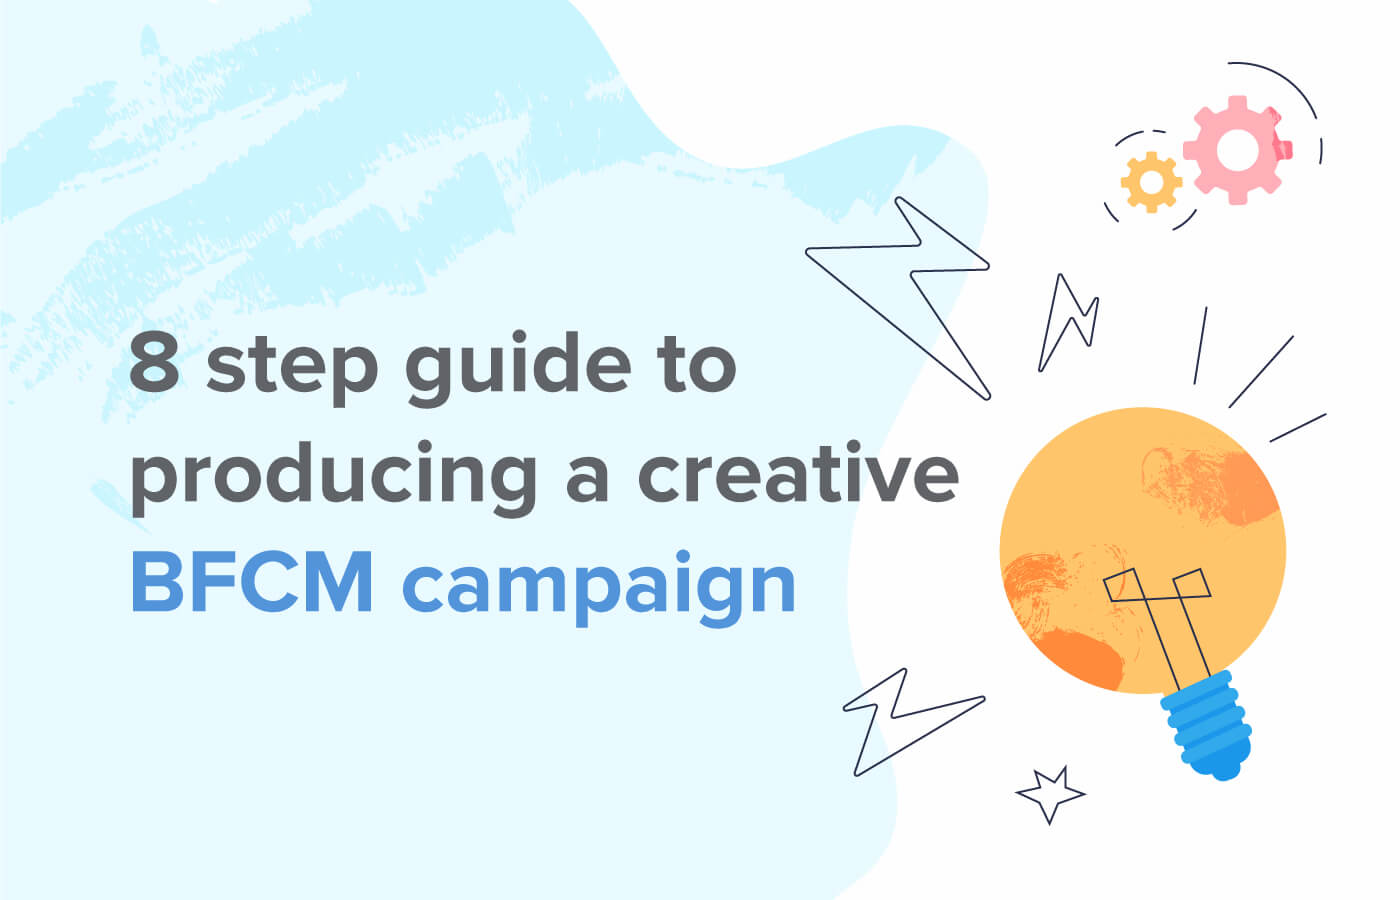 An 8-step guide to developing a creative Black Friday 2019 campaign